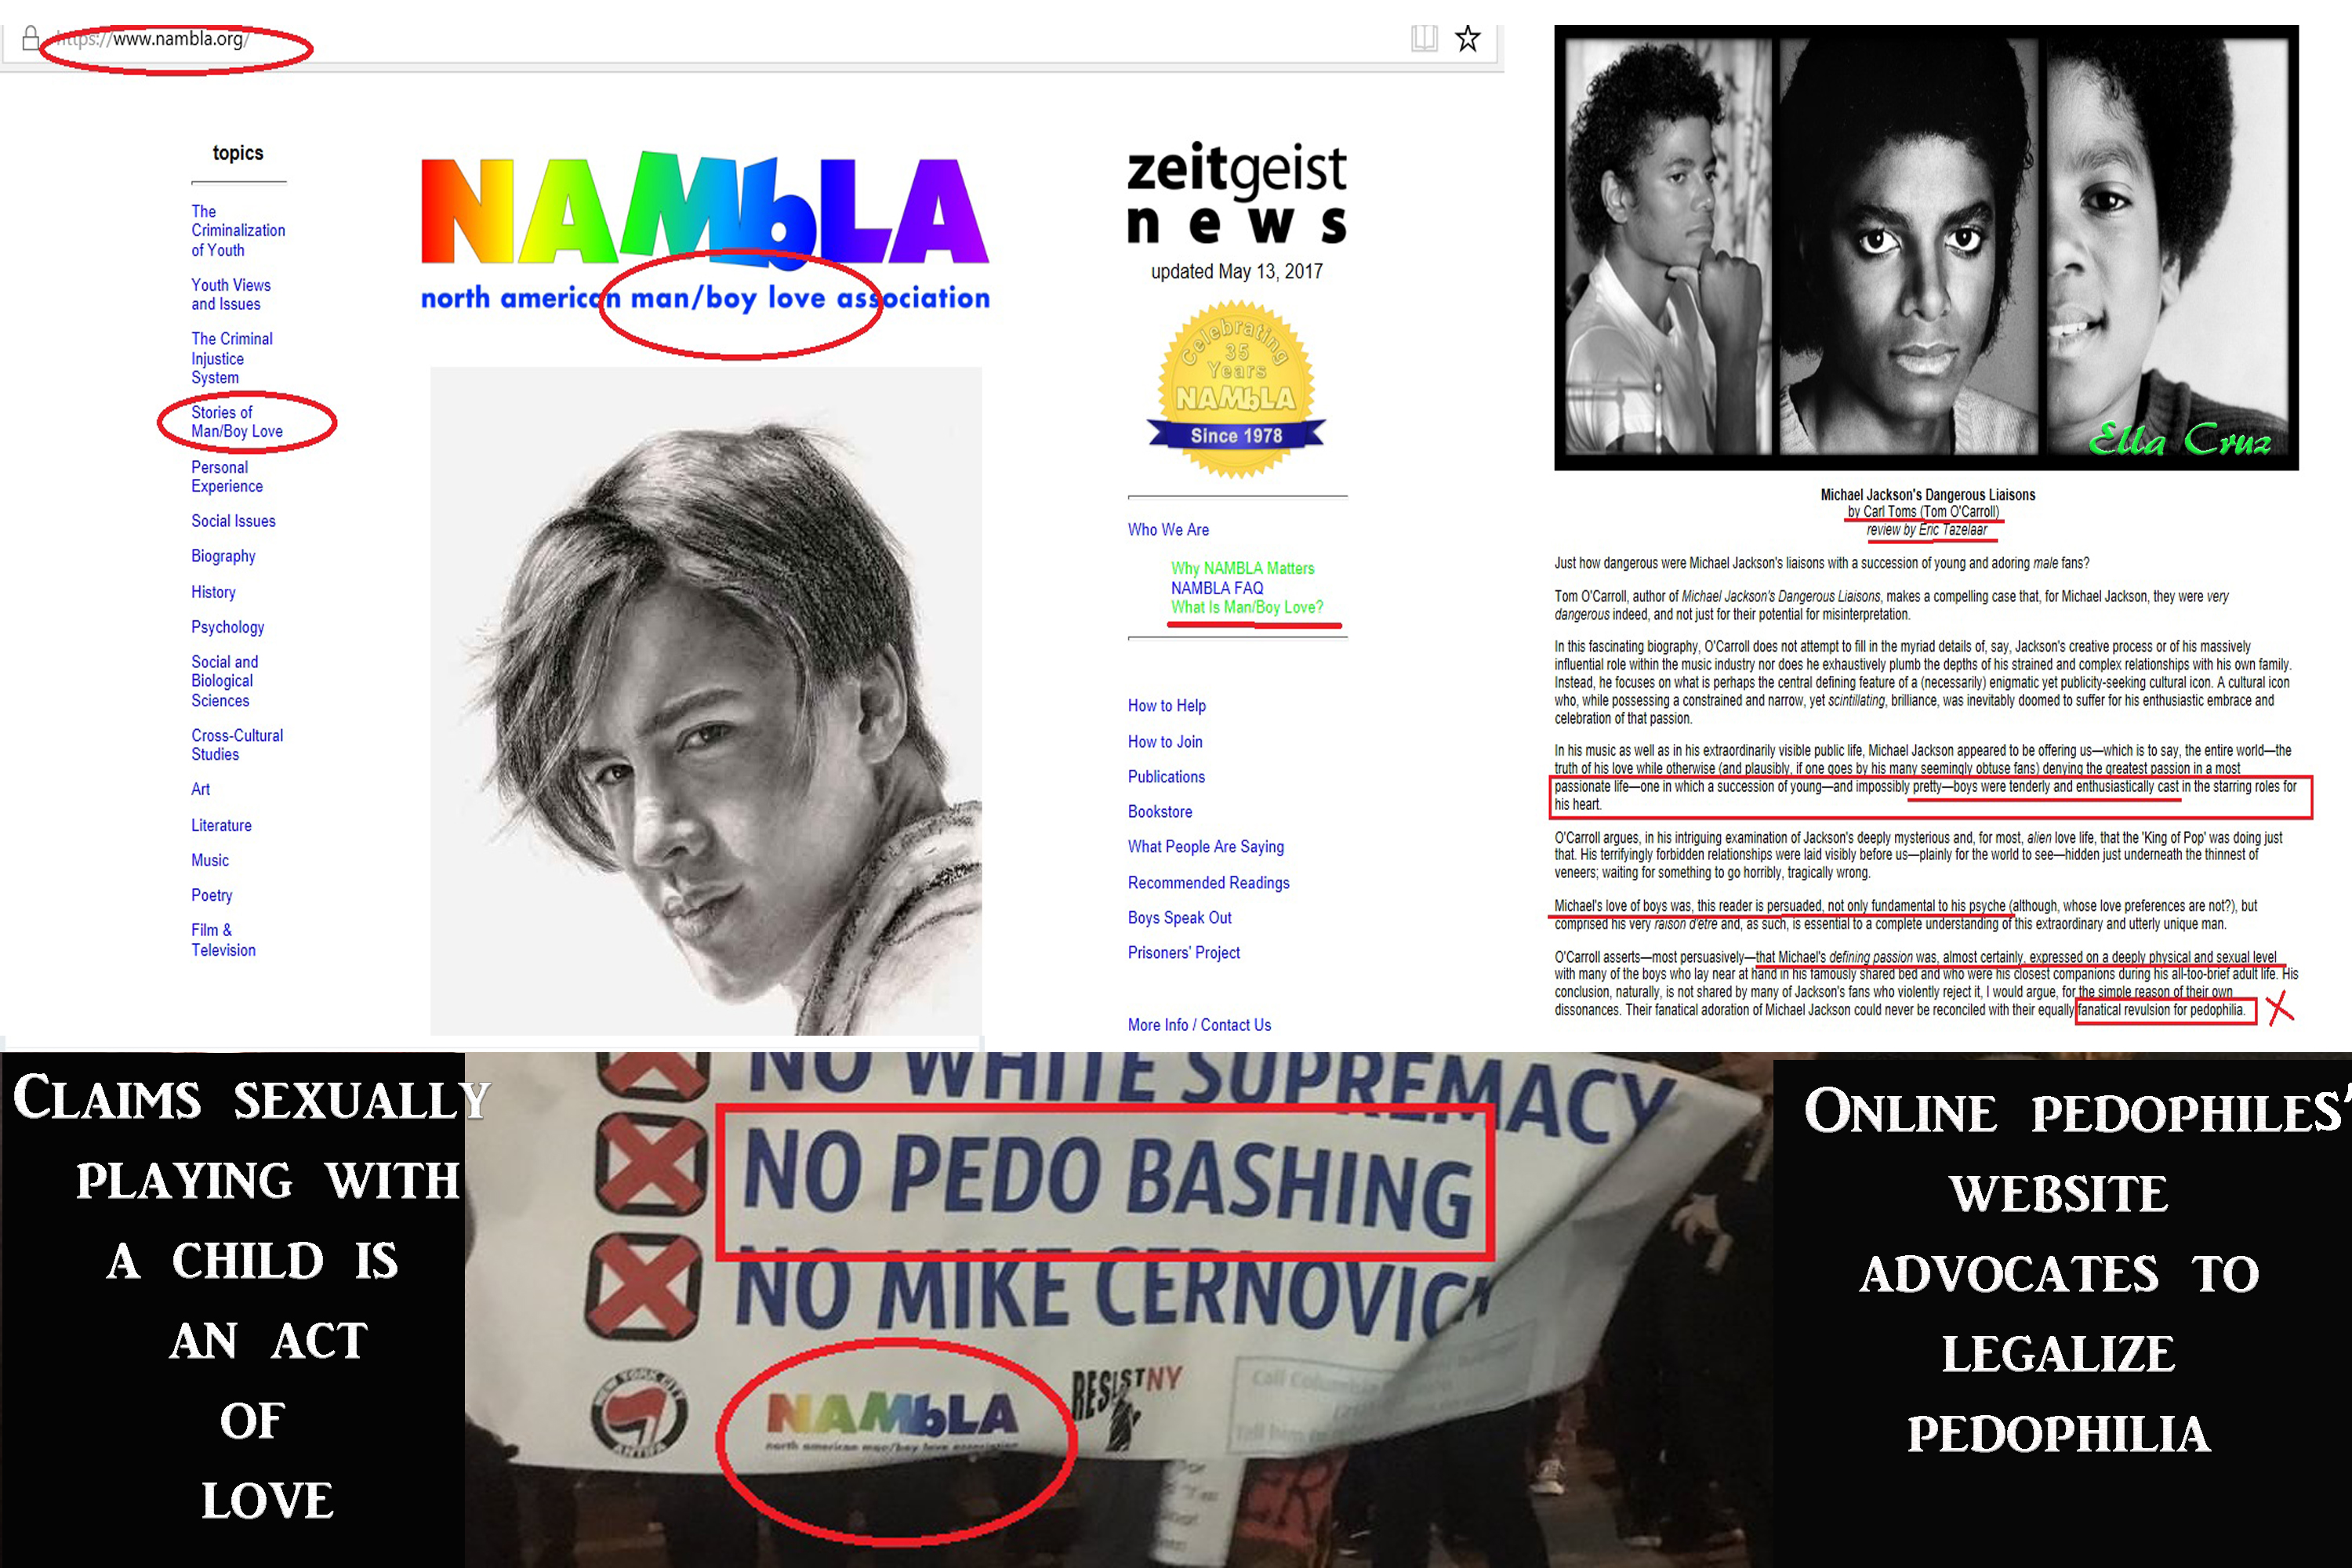 NAMBLA; The Pedophiles' Website Right In Our Faces